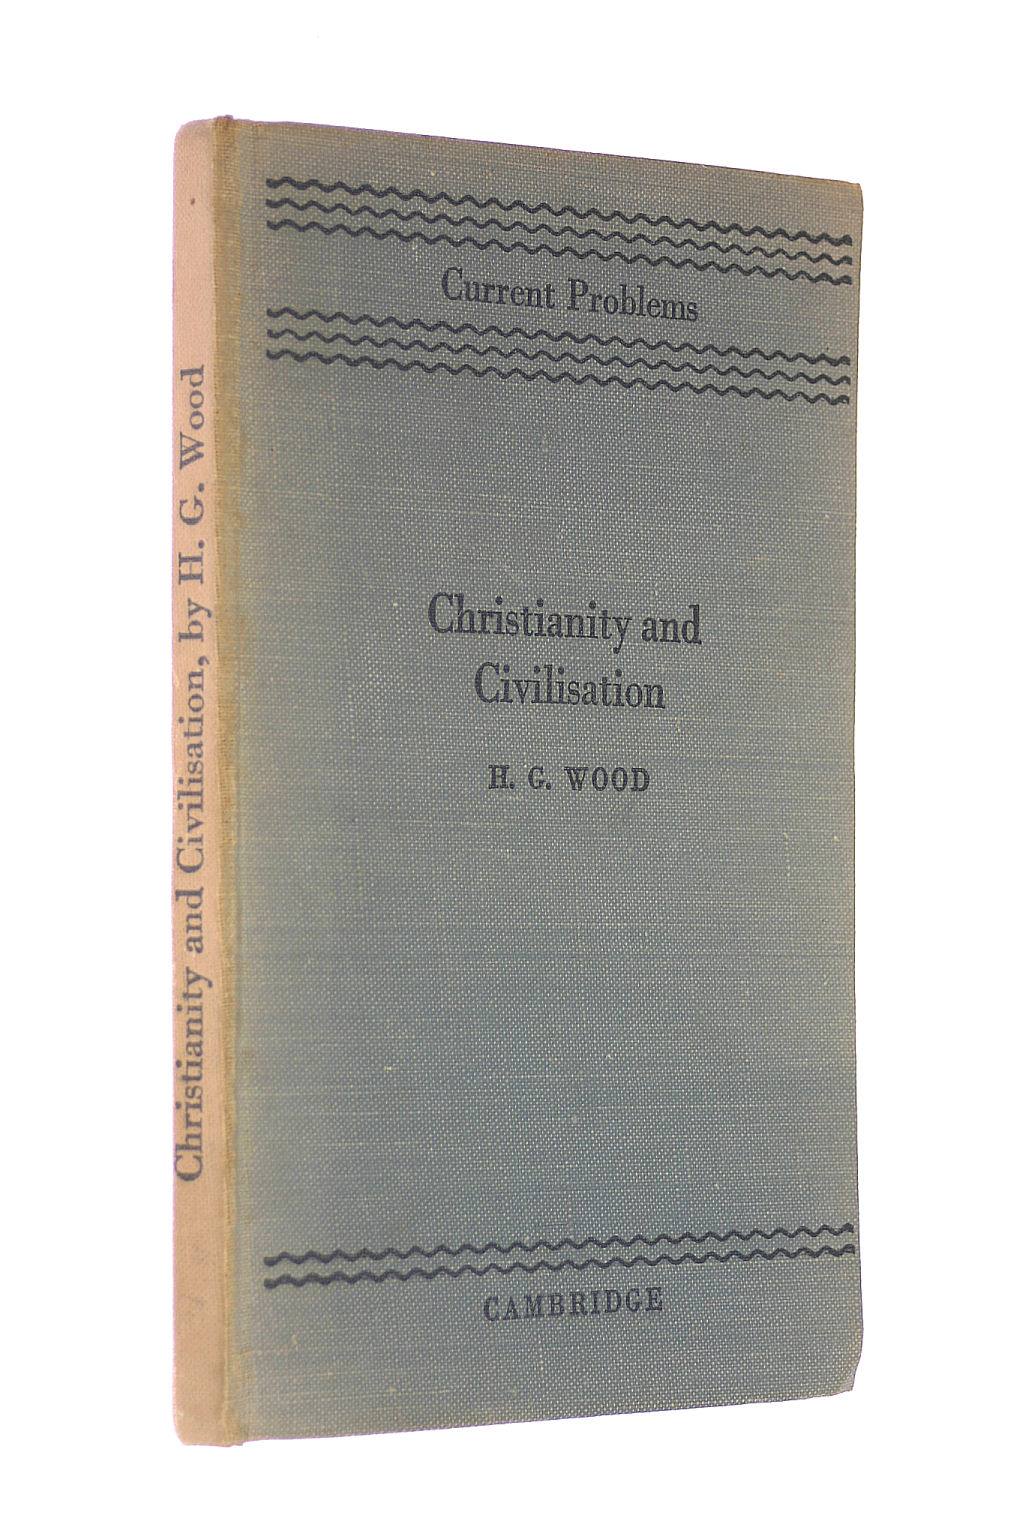 Image for Christianity and Civilization (Current problems)